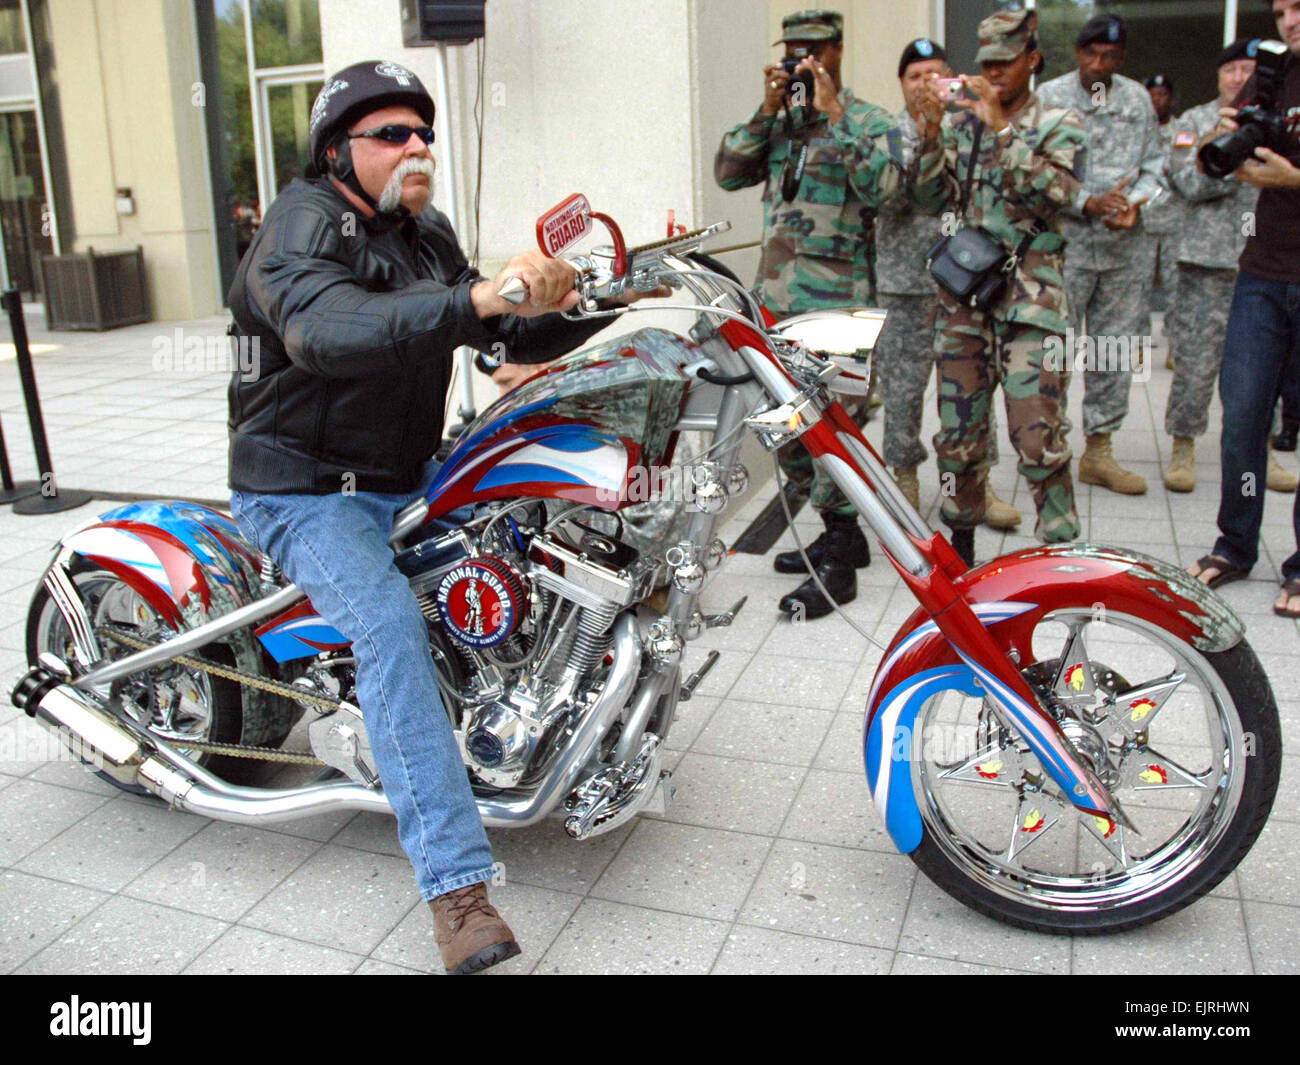 Paul Teutul Sr Of Orange County Choppers Fame Rides The